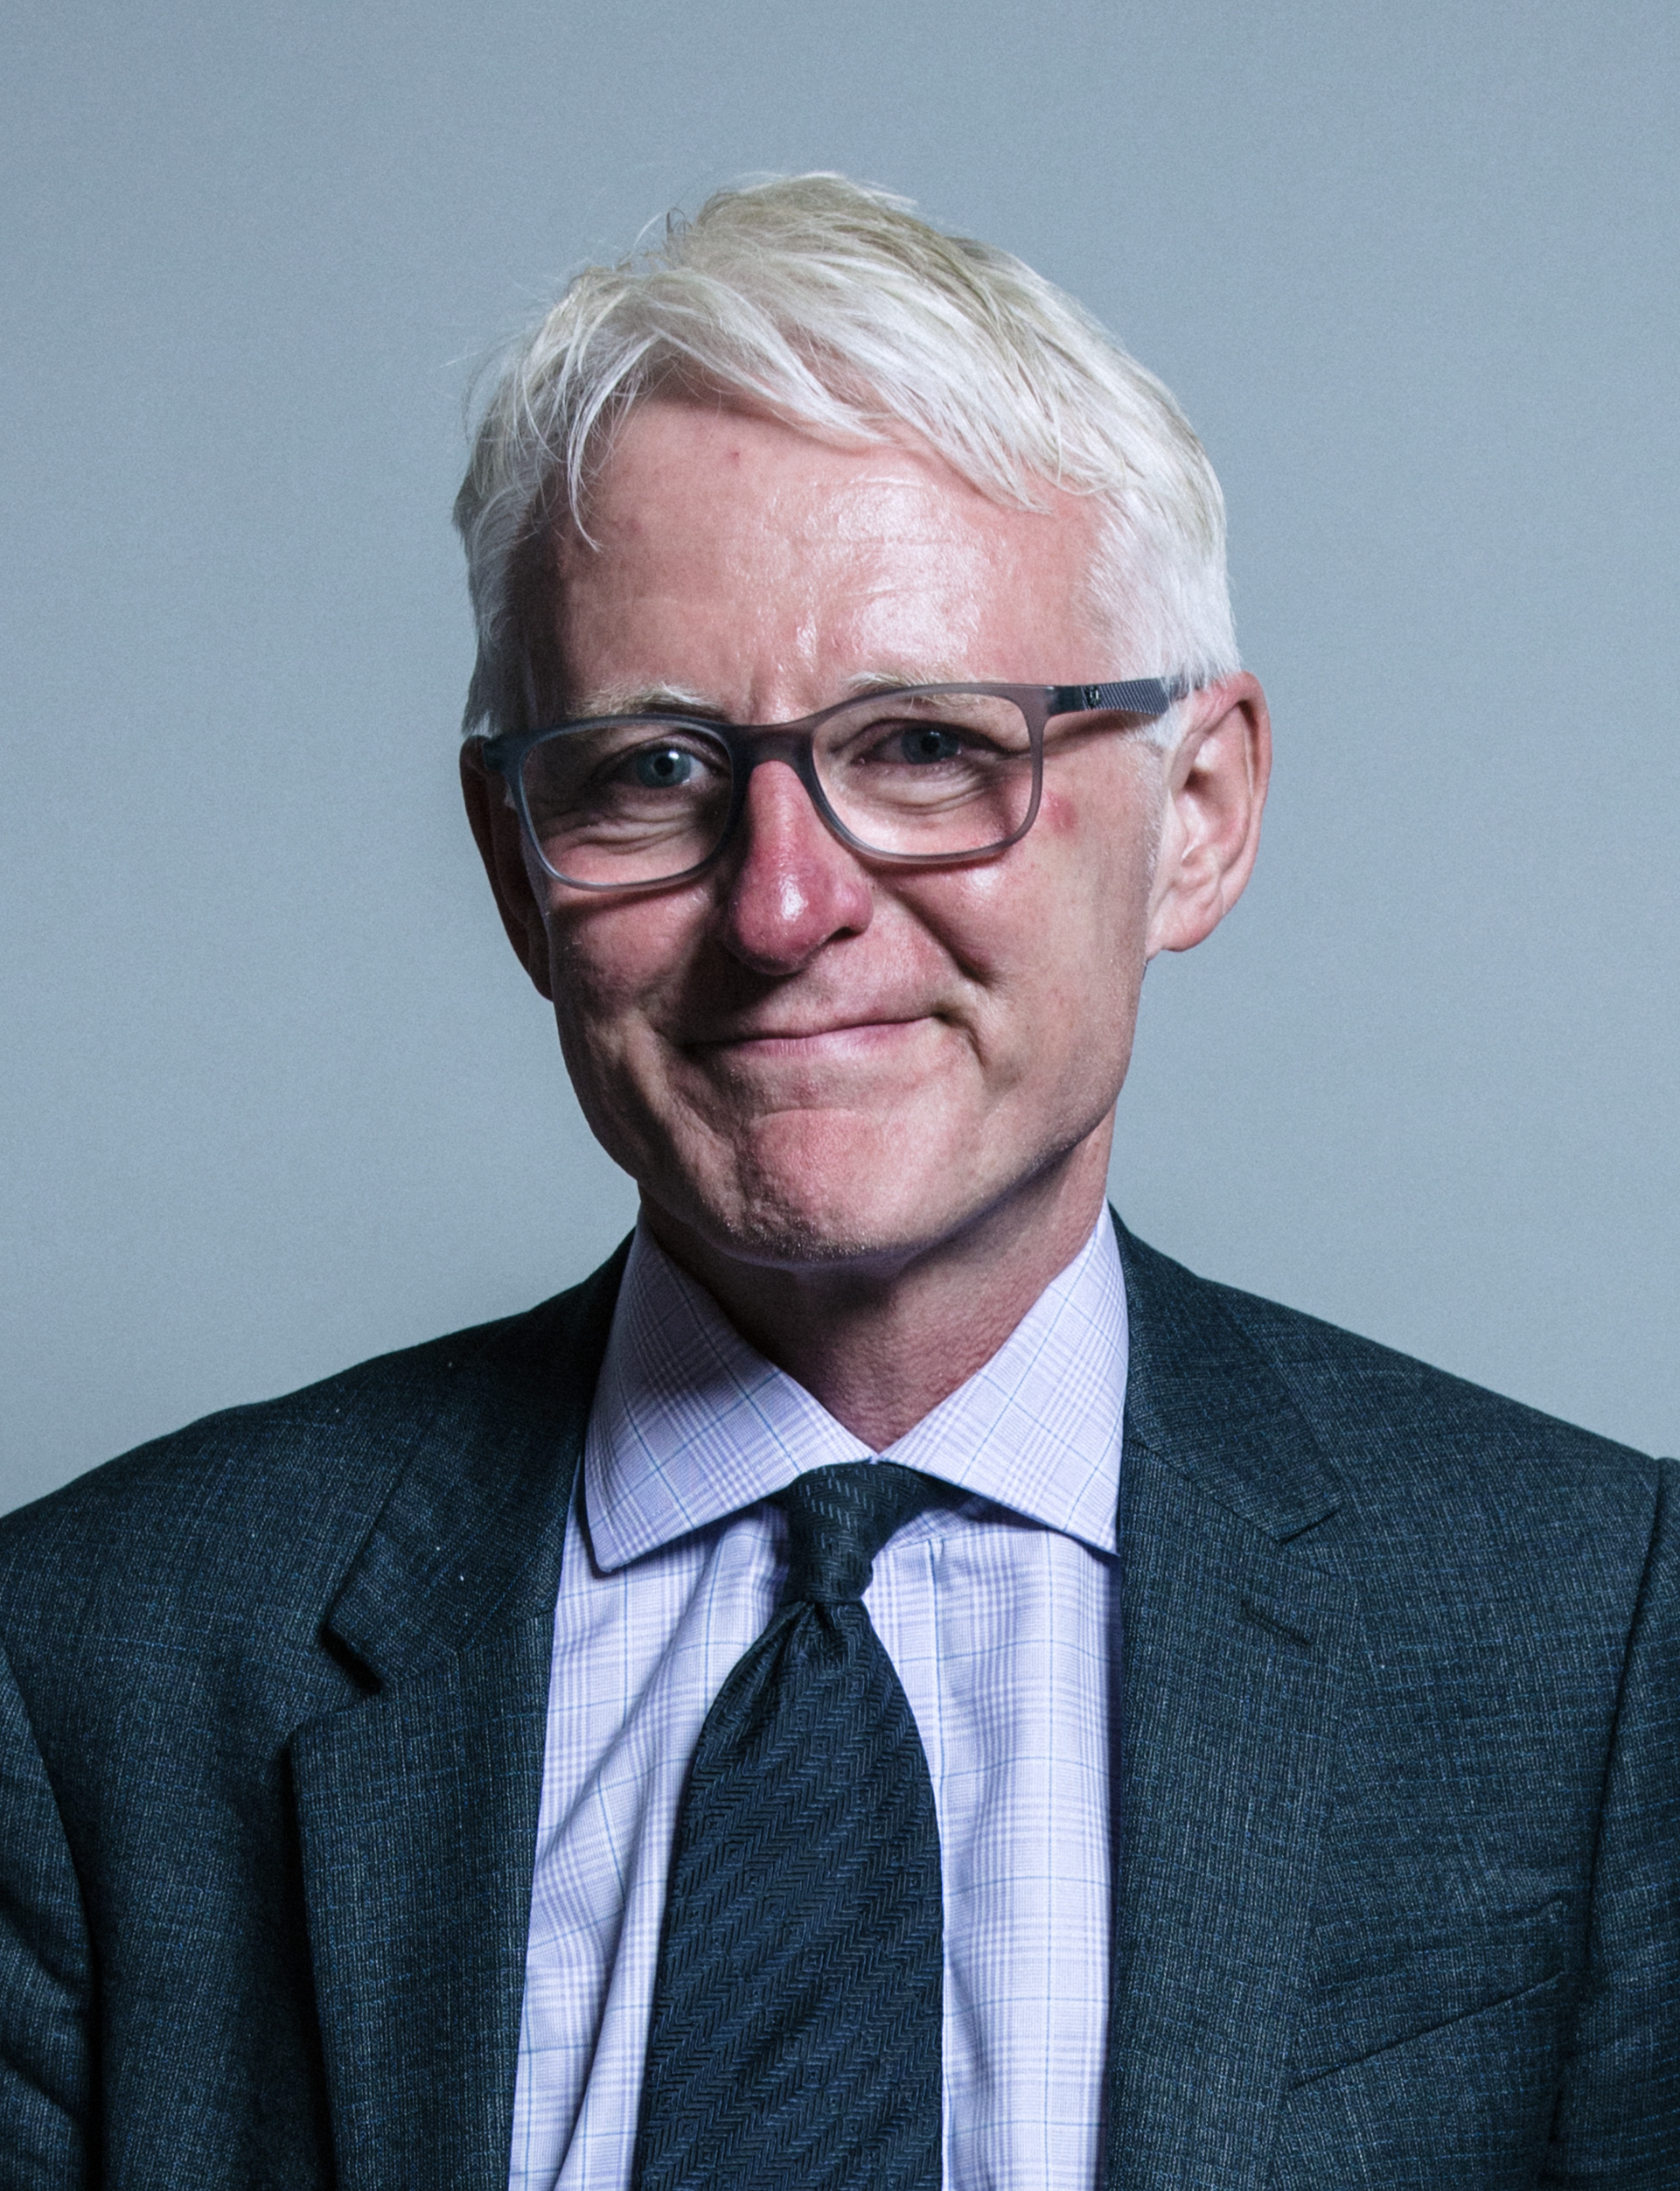 Sir Norman Lamb, M.P.